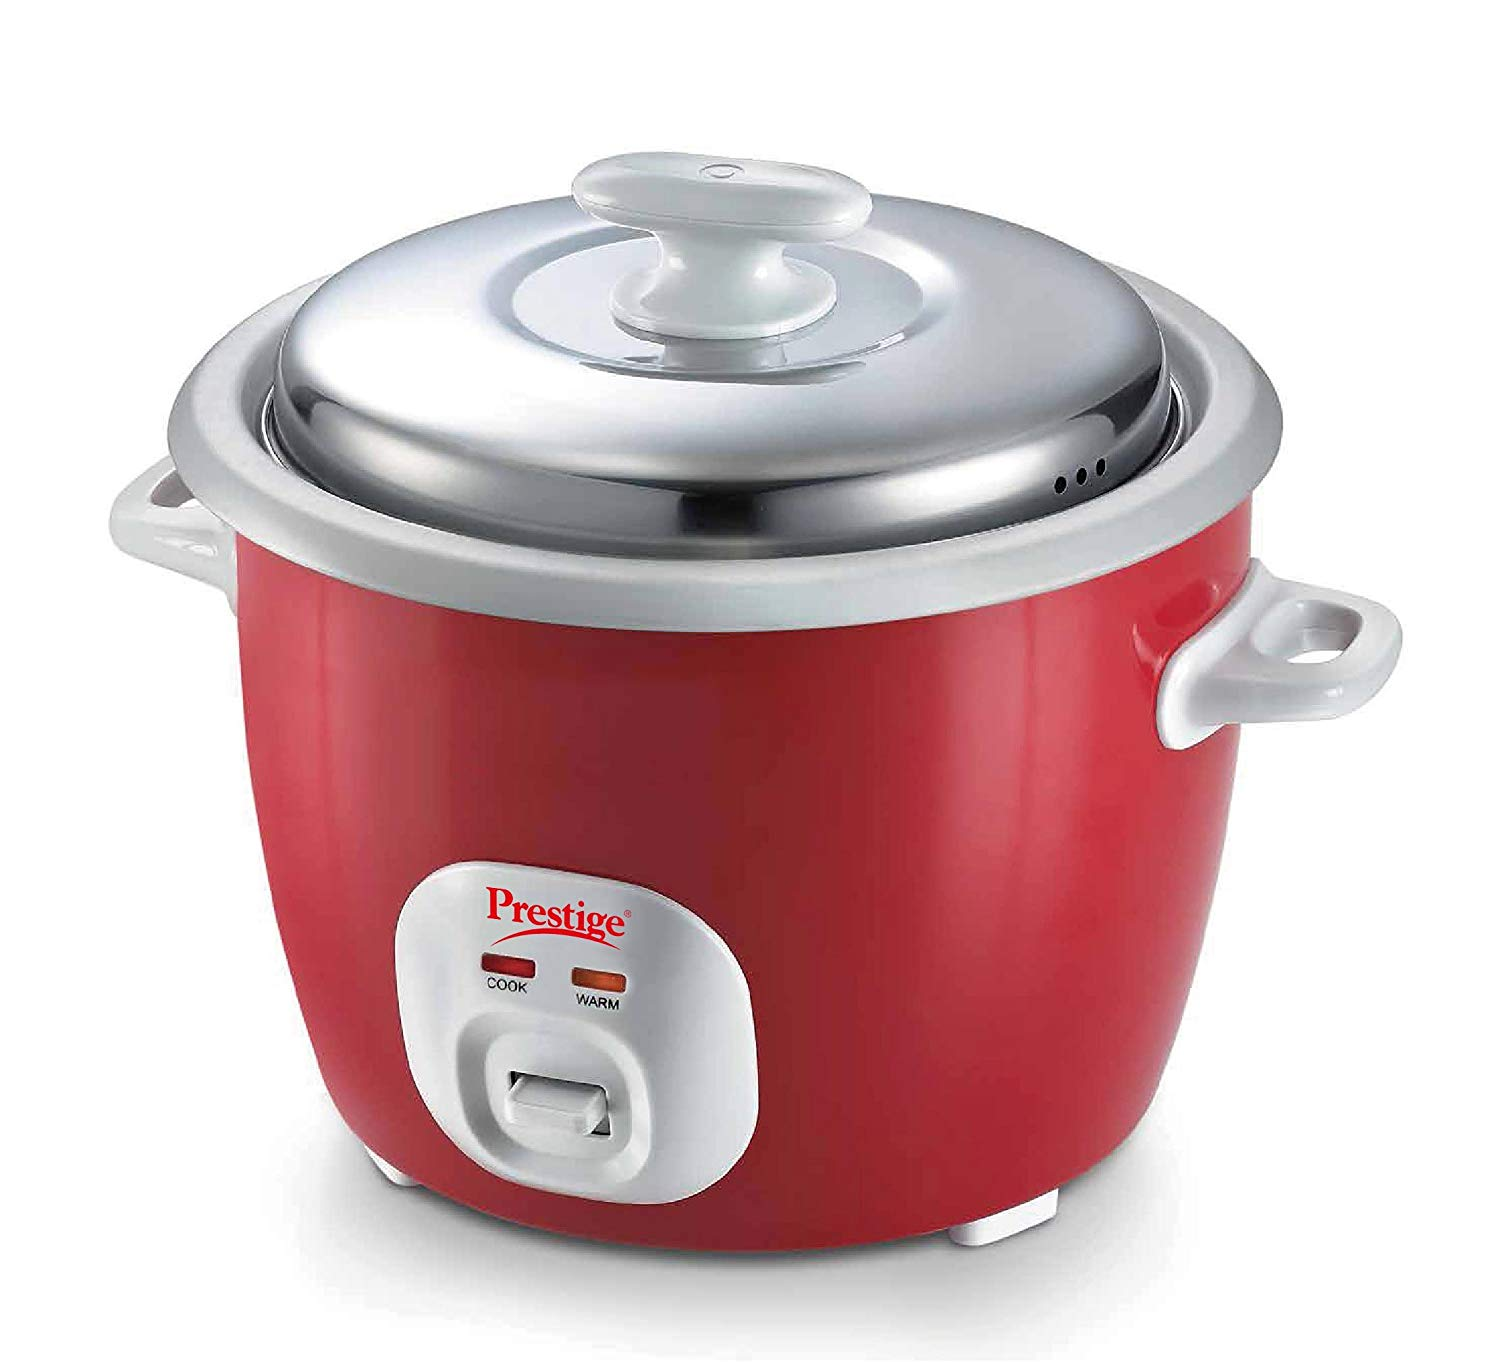 hight resolution of prestige delight electric rice cooker cute 1 8 2 700 watts